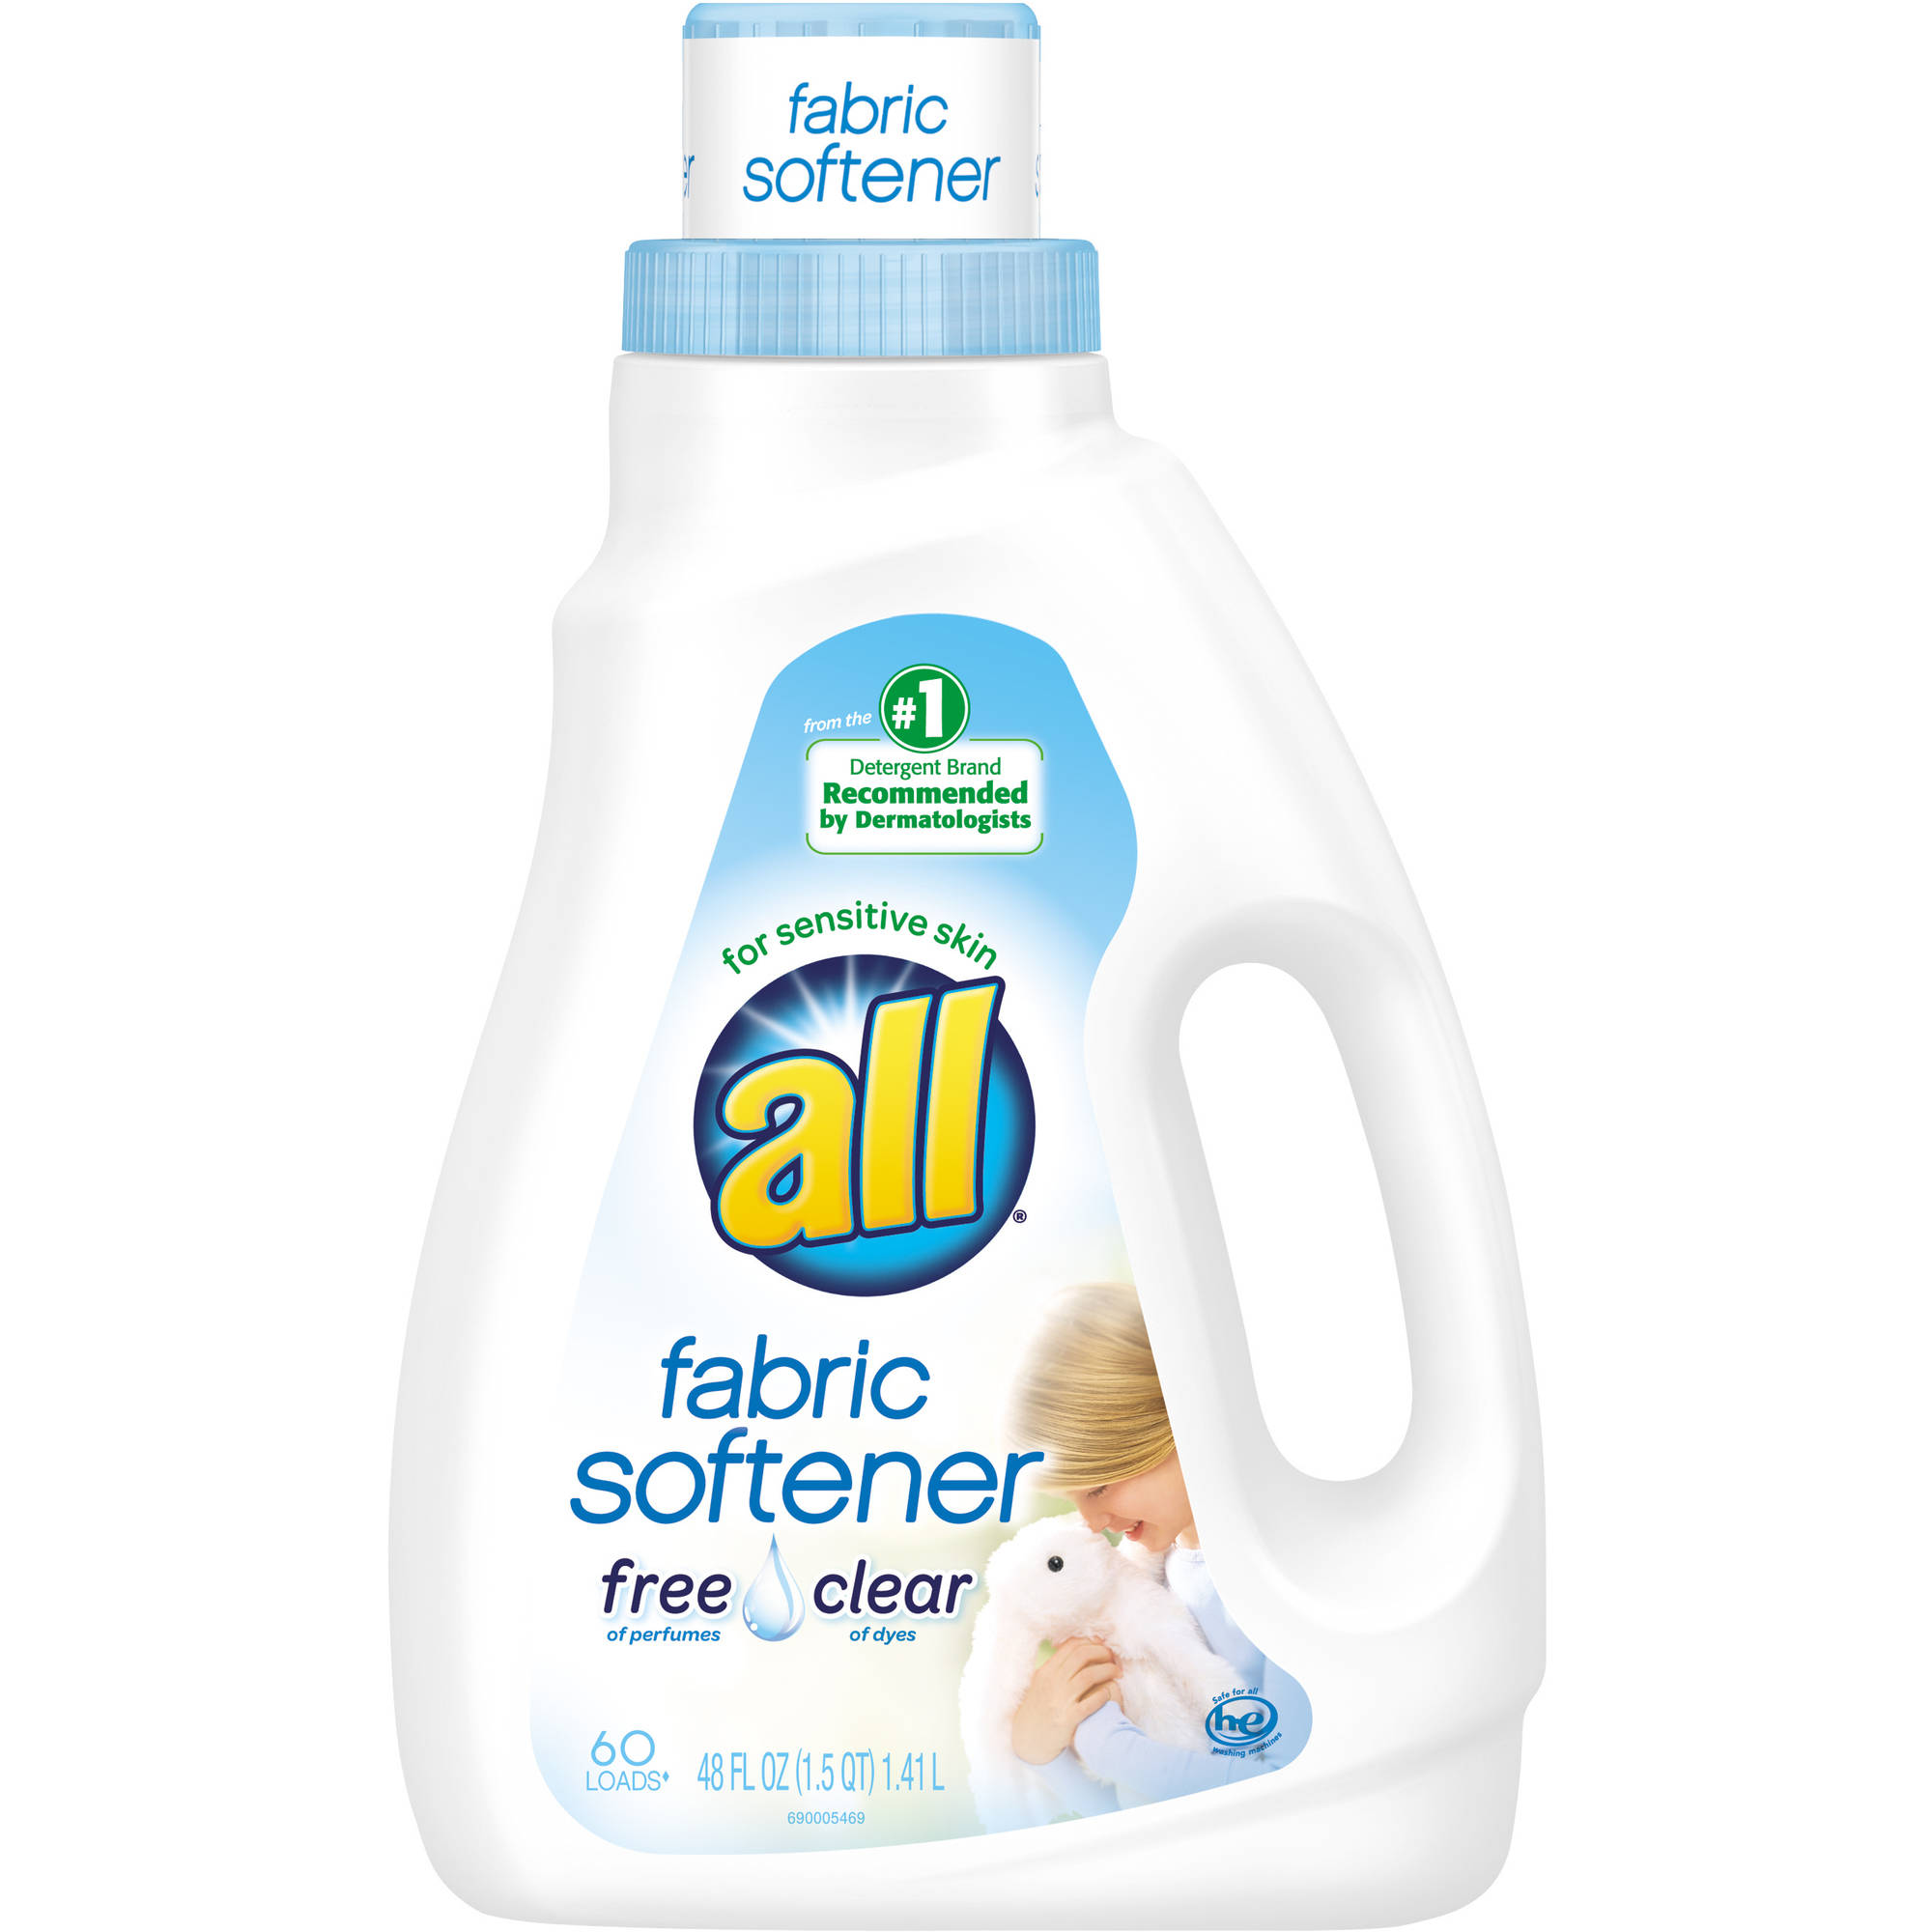 How Much Fabric Softener To Use All Free Clear Ultra Fabric Softener For Sensitive Skin 48 Fl Oz